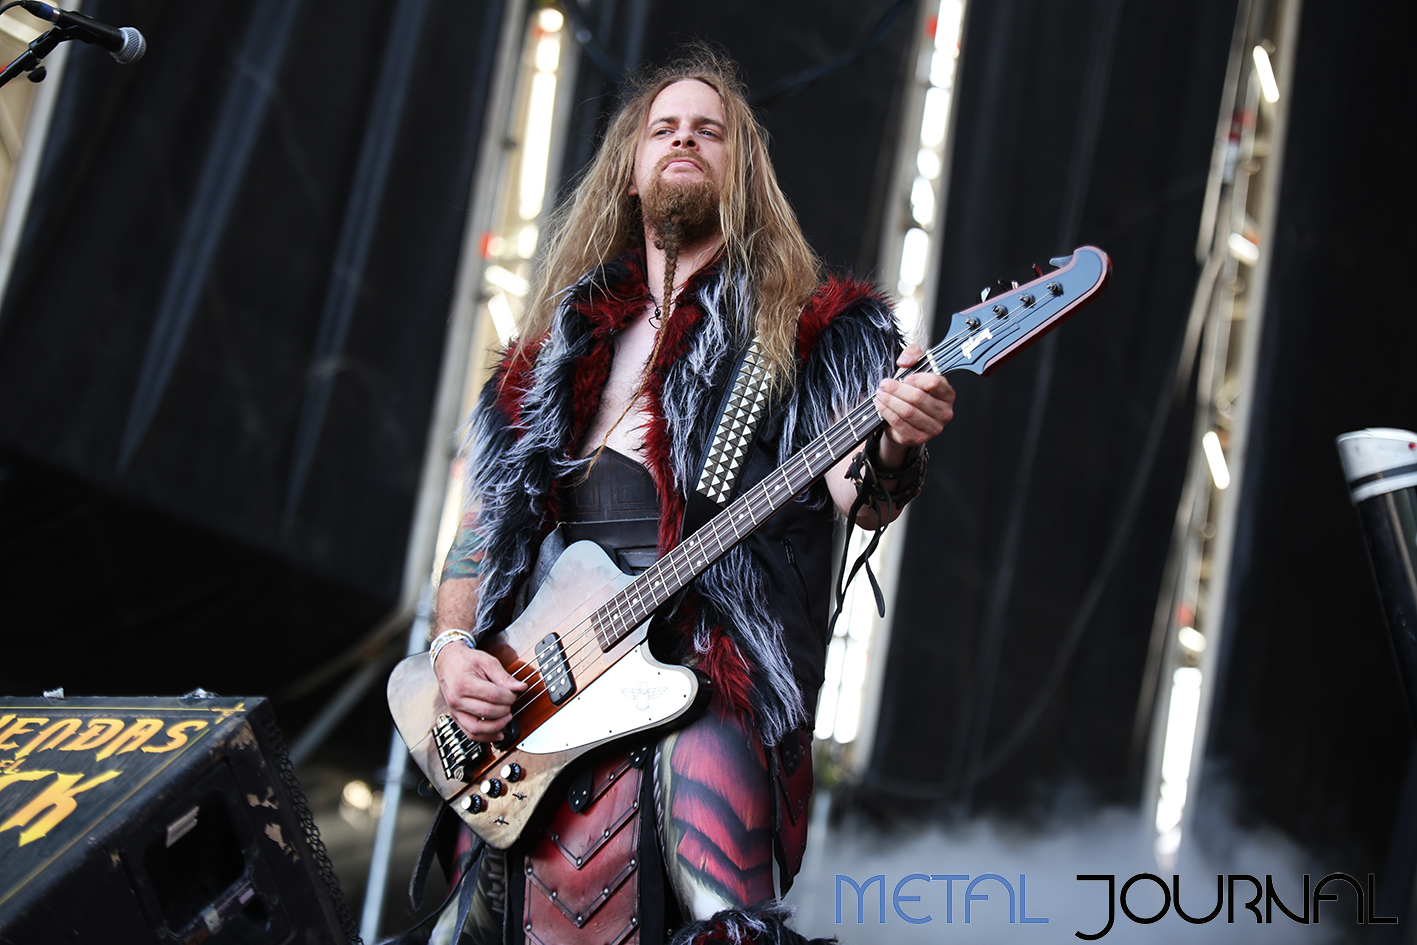 gloryhammer - leyendas del rock 2019 metal journal pic 2